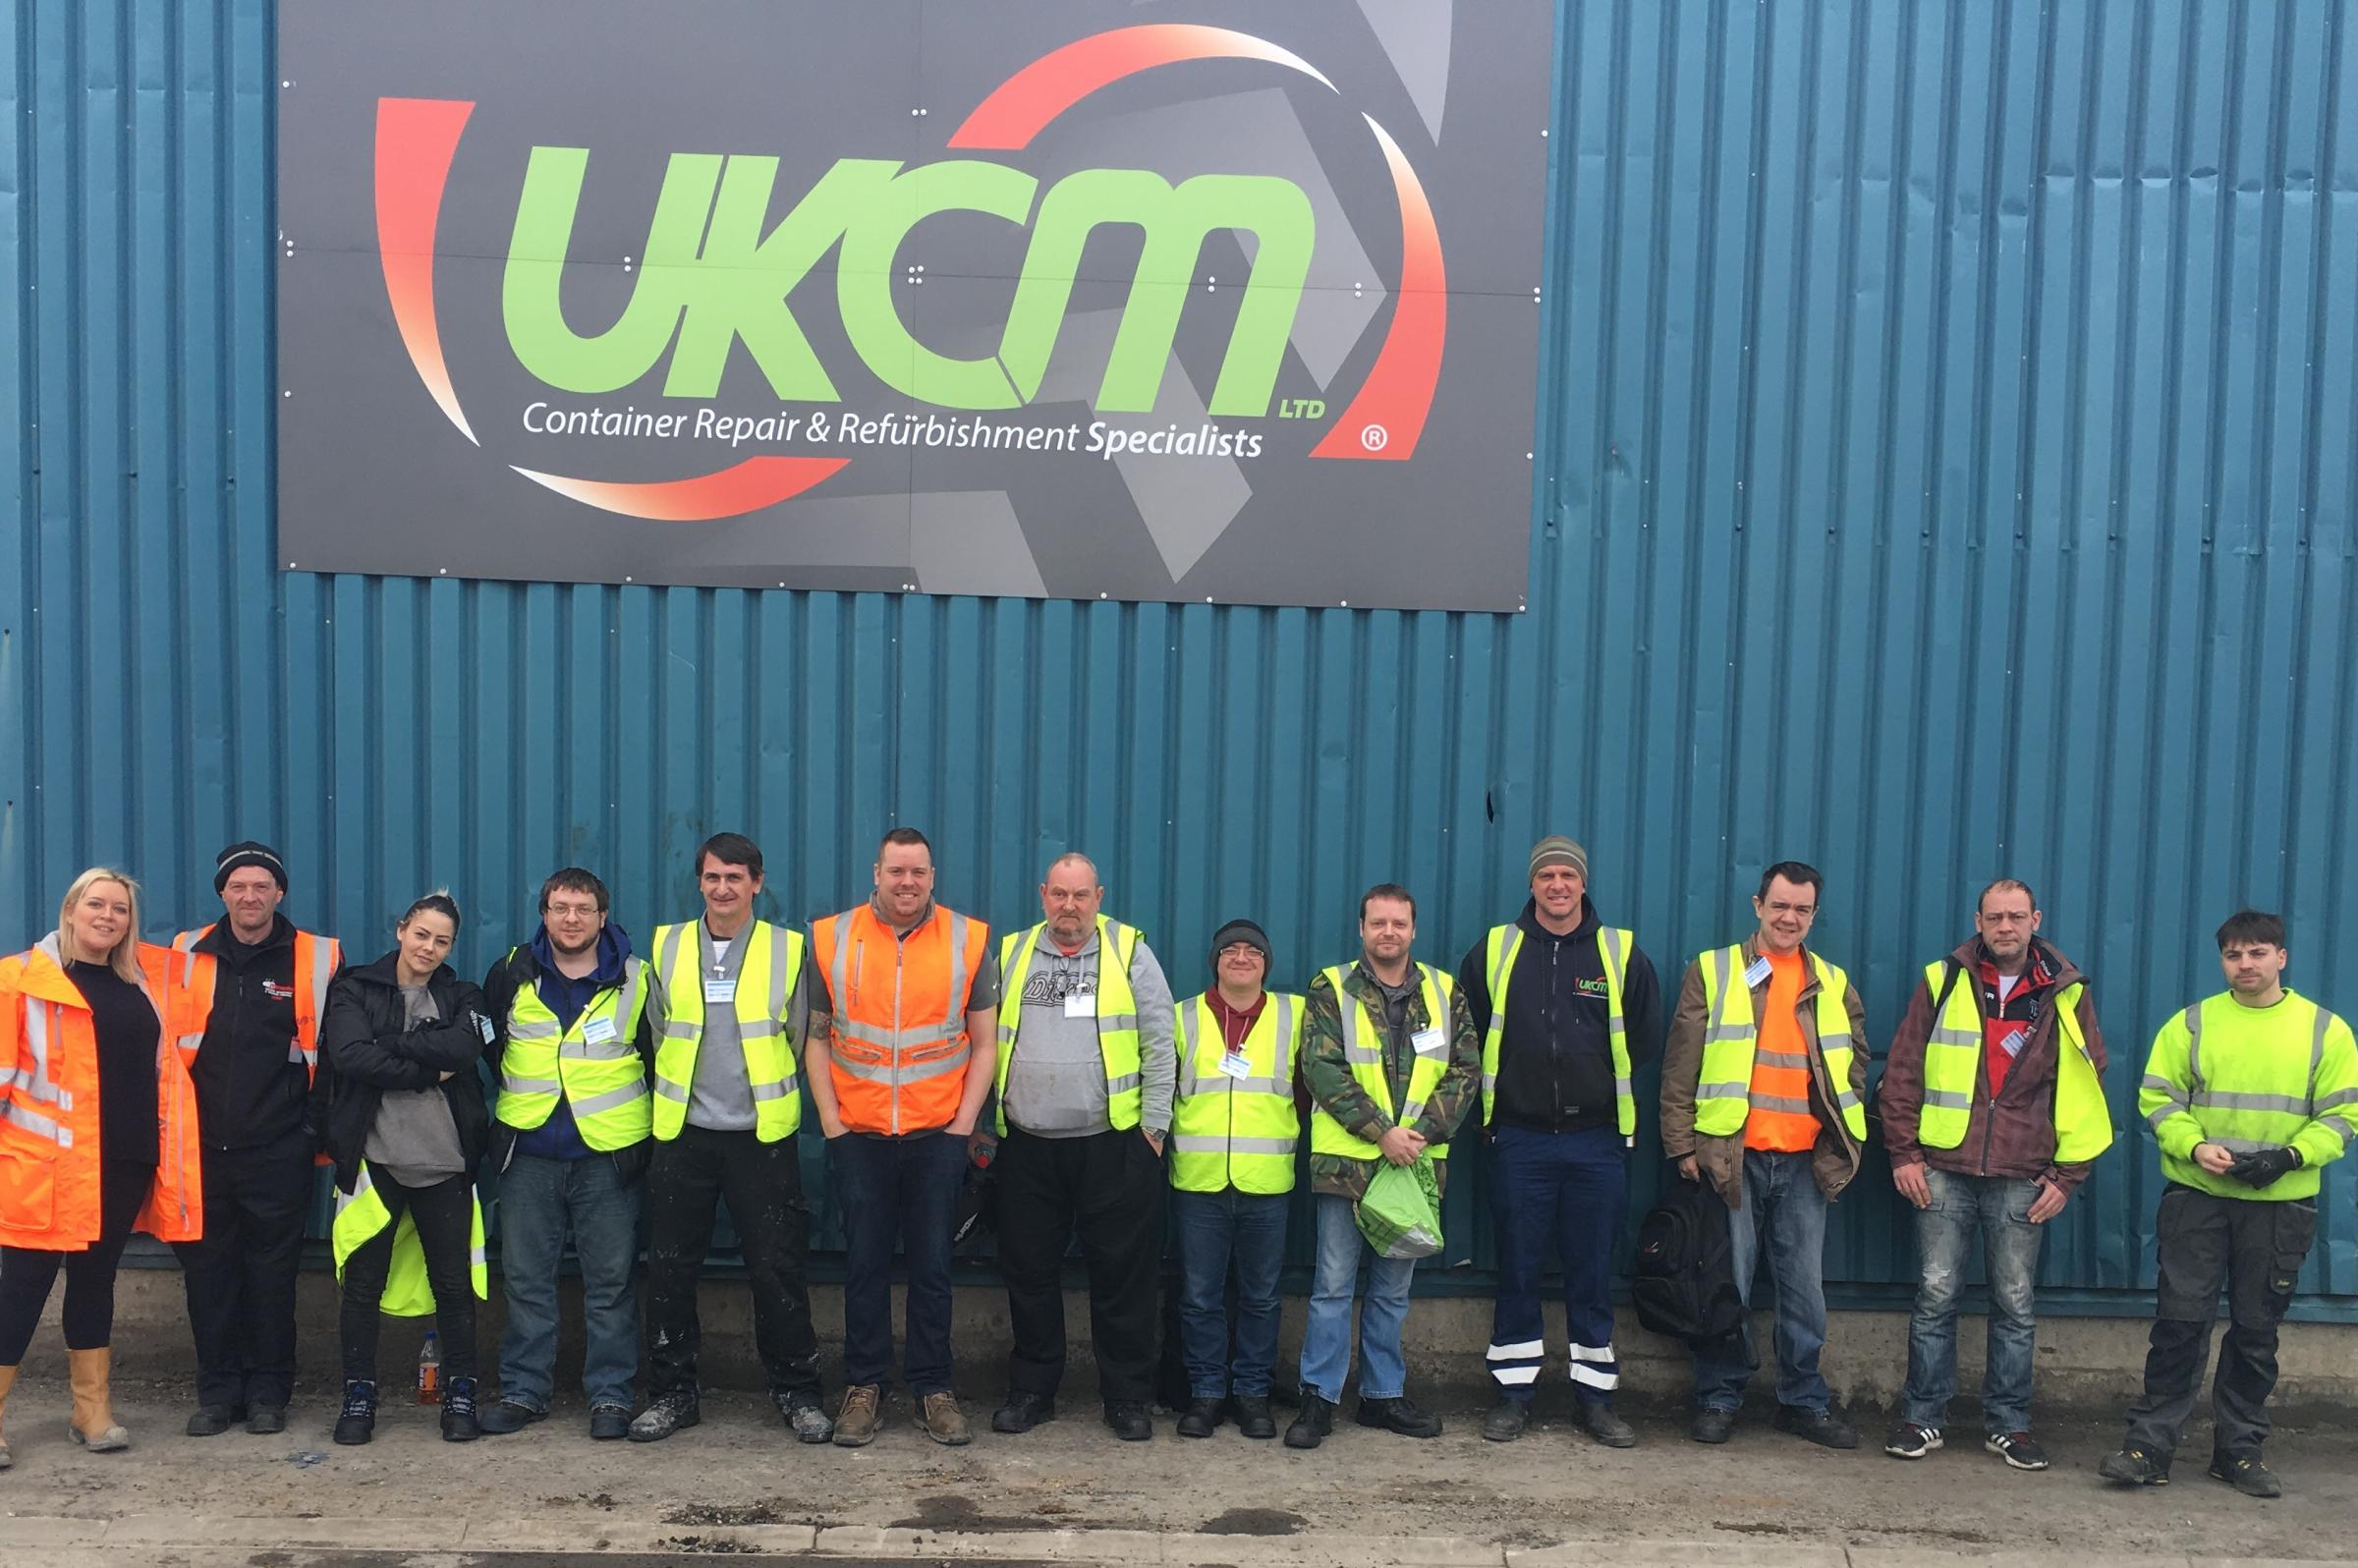 New partnership sparks welding course for unemployed